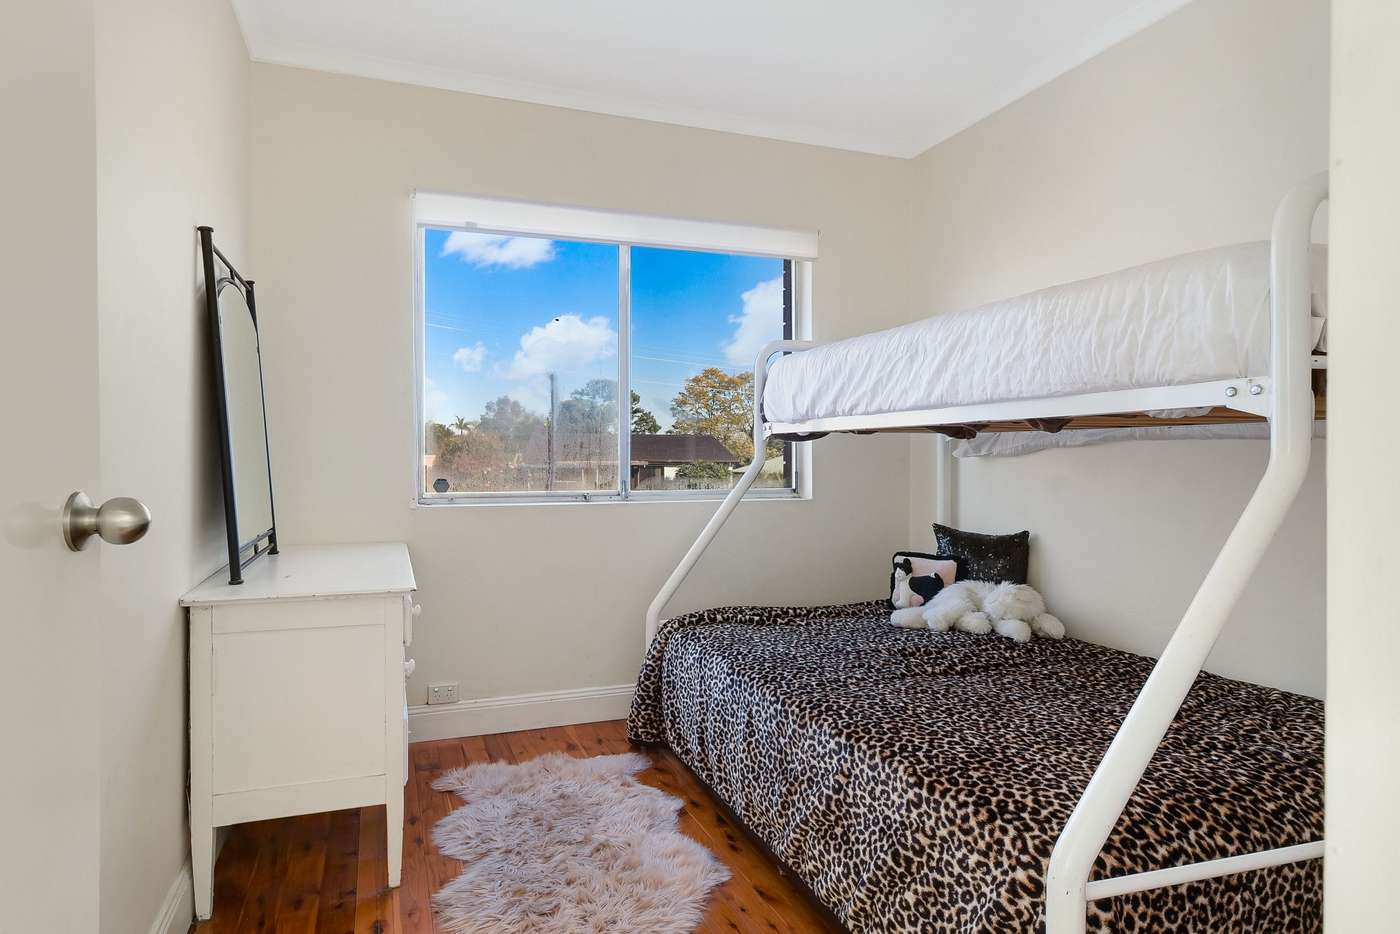 Sixth view of Homely unit listing, 3/6 Reddall Street, Campbelltown NSW 2560